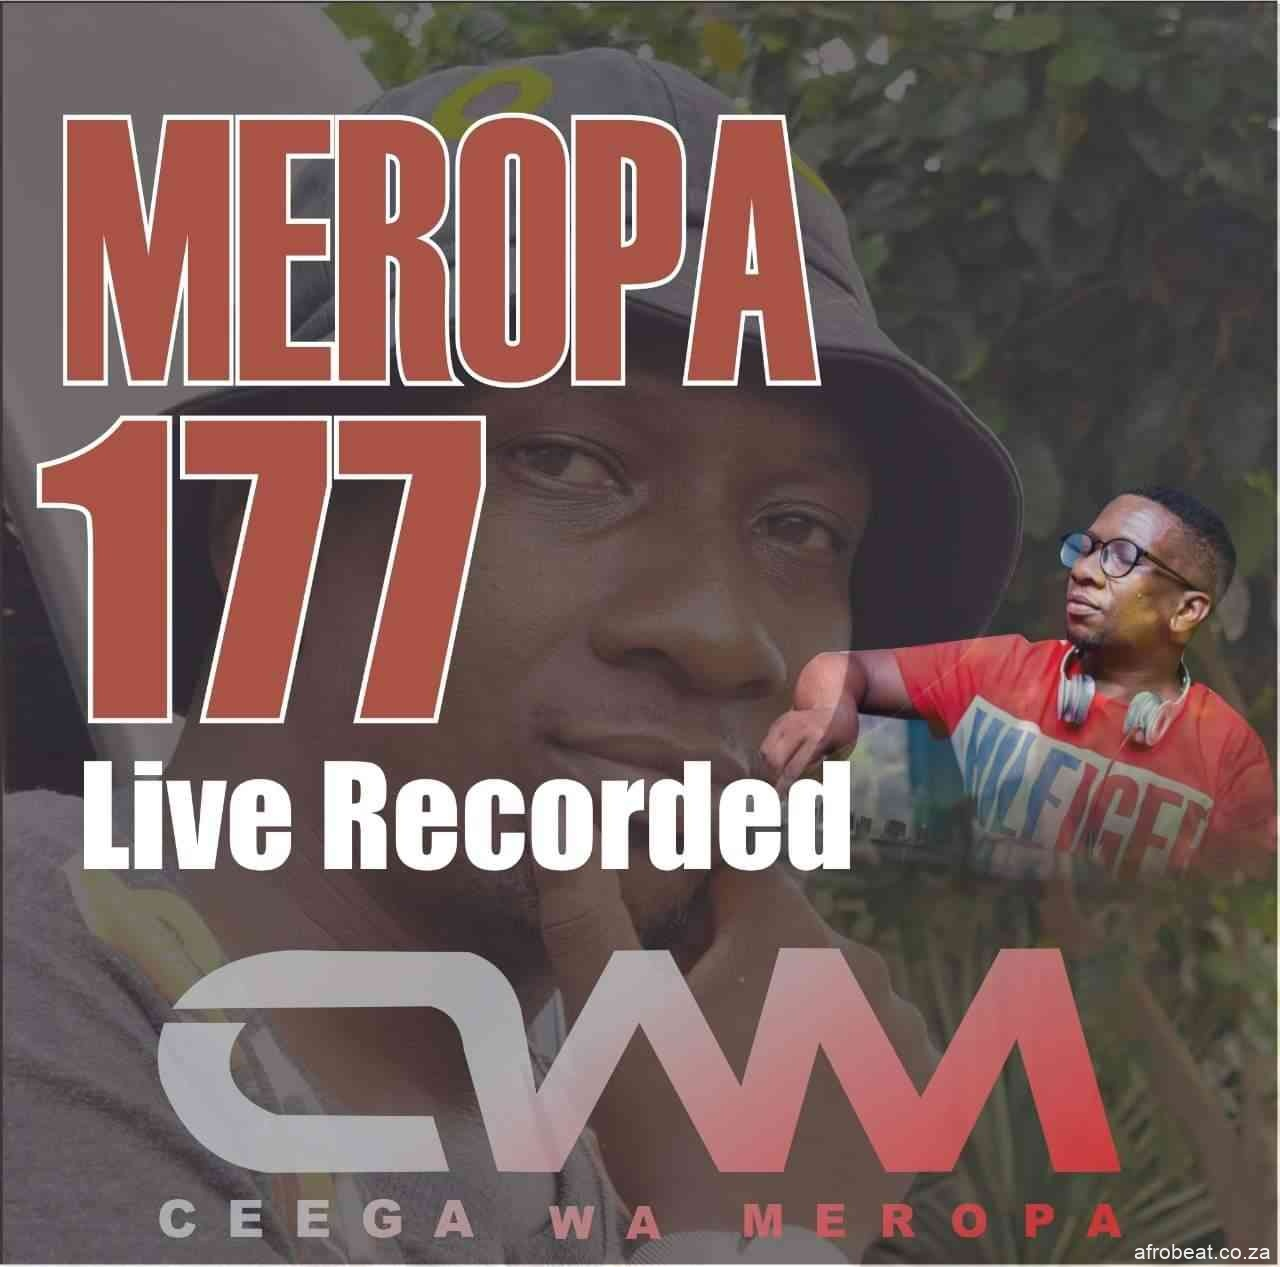 175093086 1929209280577204 7879130223412664606 n - Ceega – Meropa 177 Mix (The Only Truth Is Music)